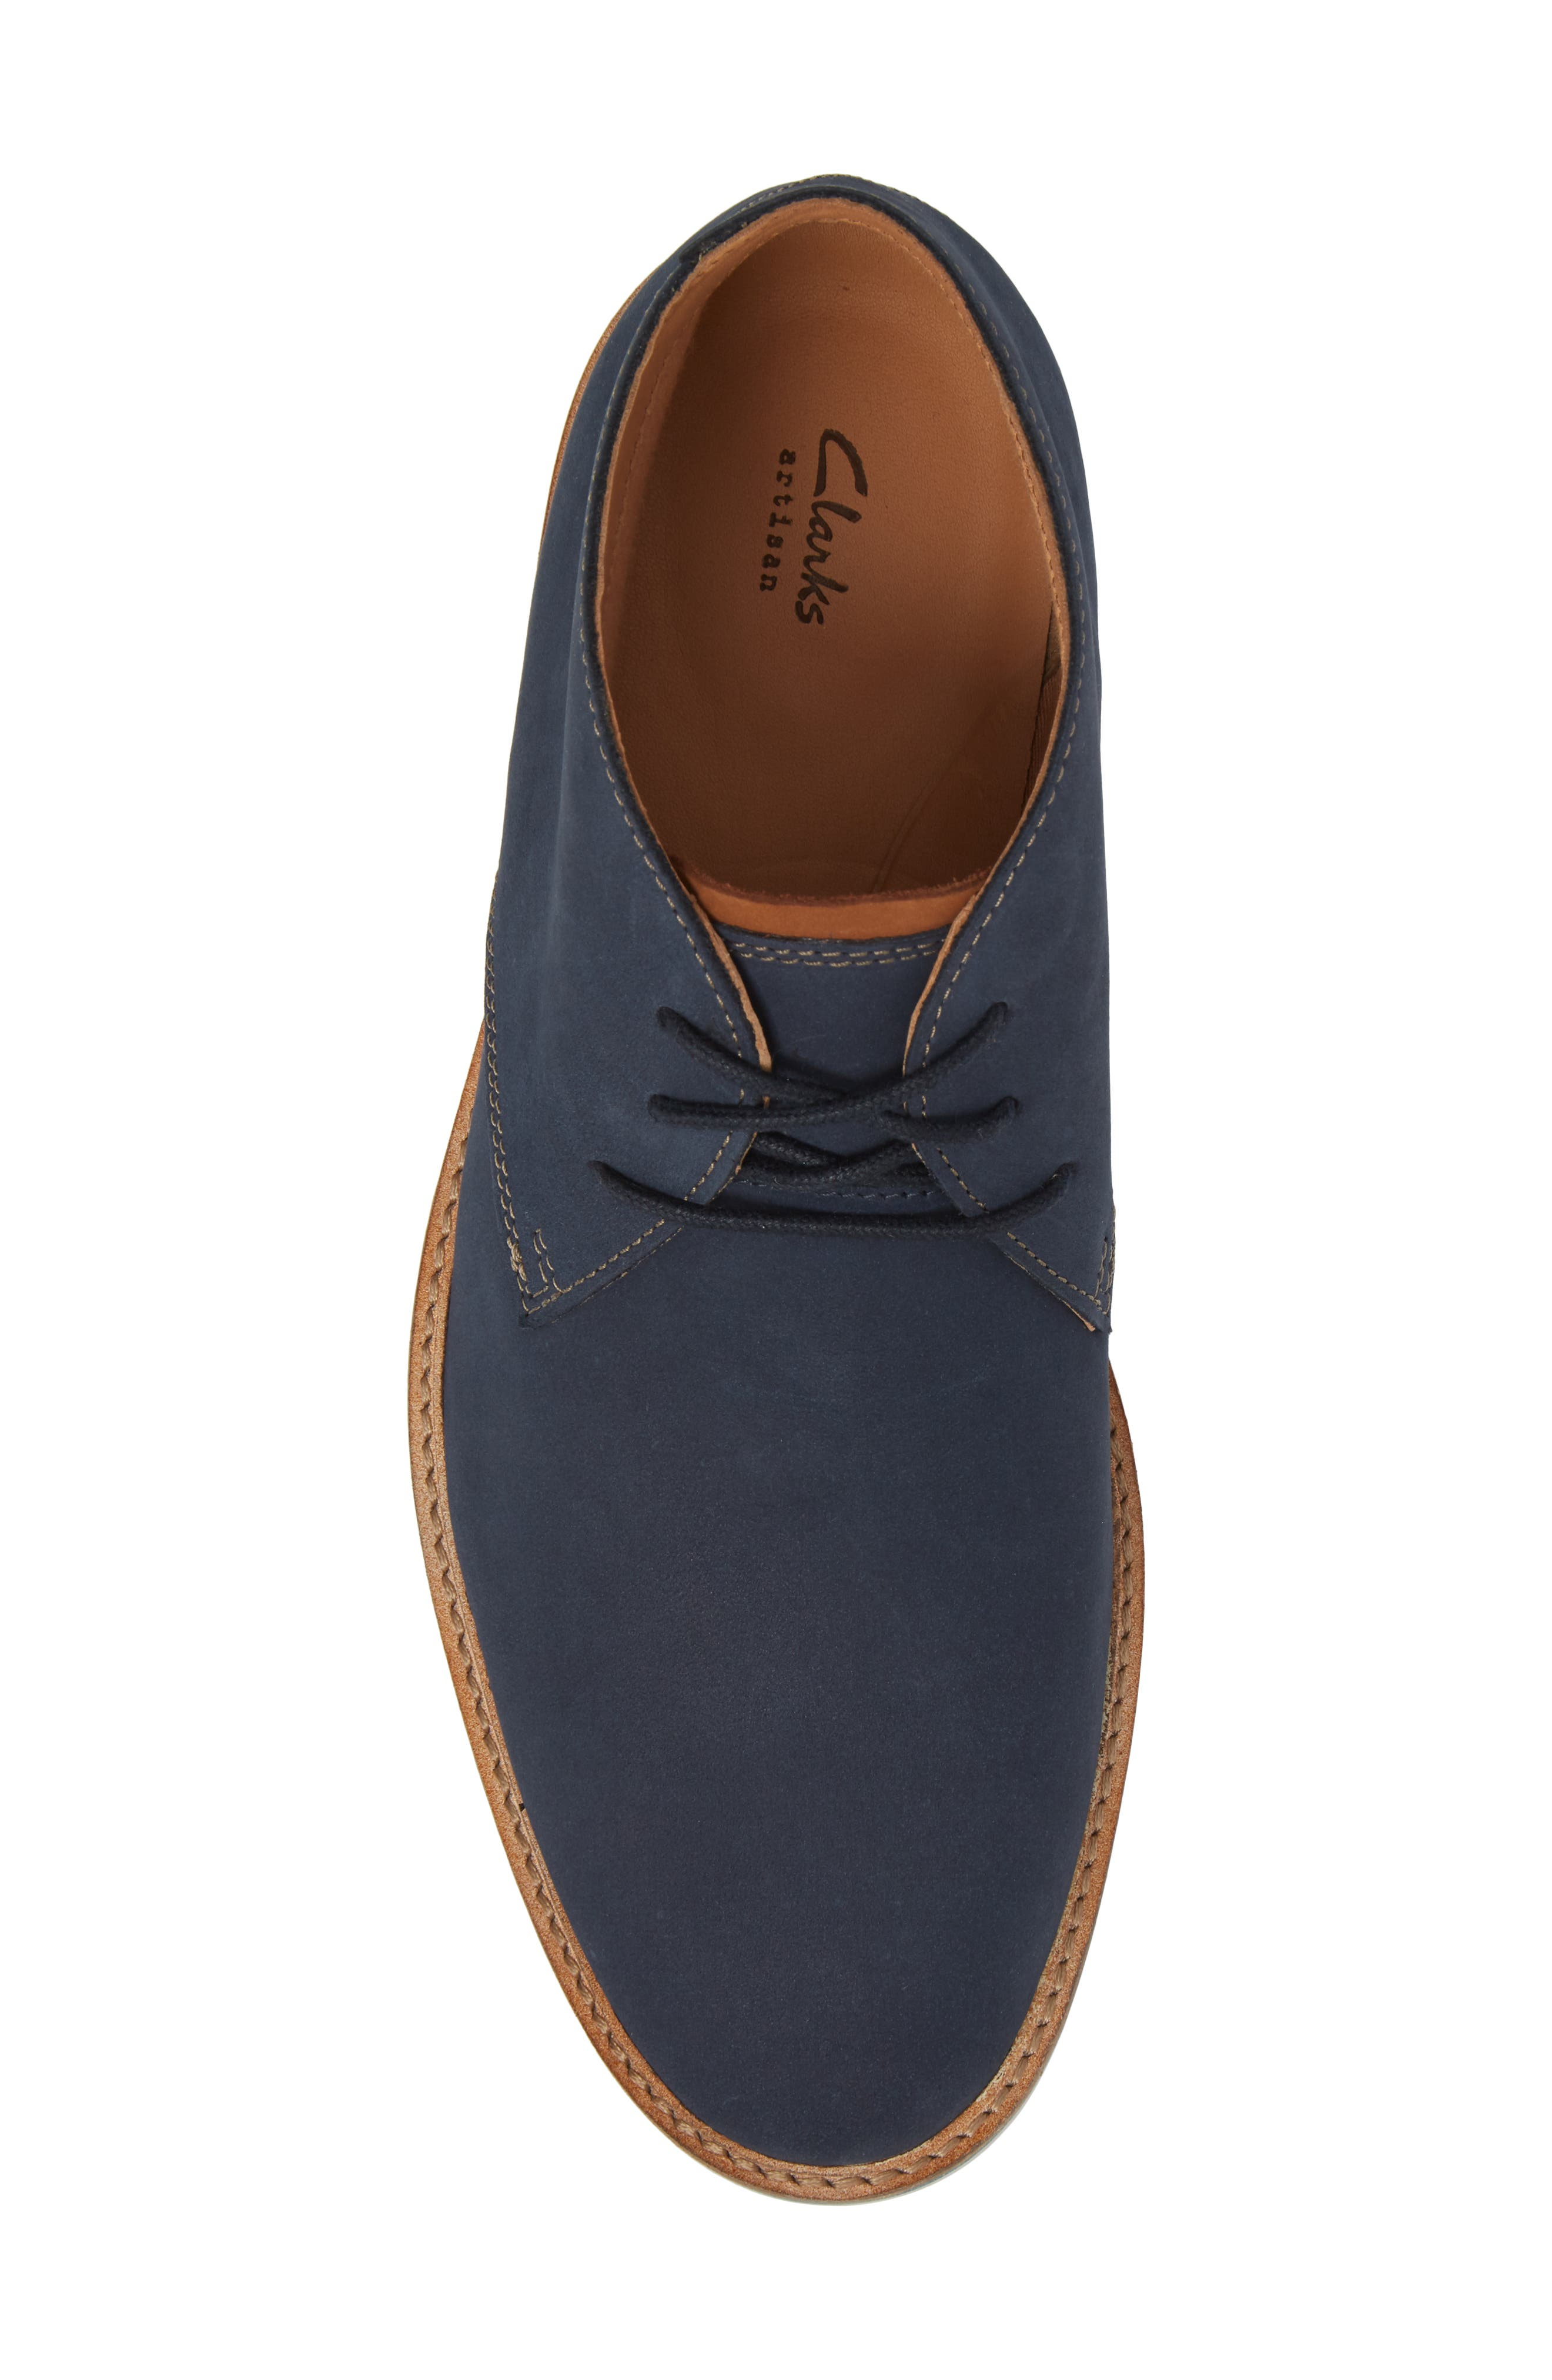 Clarks<sup>®</sup> Atticus Limit Chukka Boot,                             Alternate thumbnail 5, color,                             Navy Nubuck